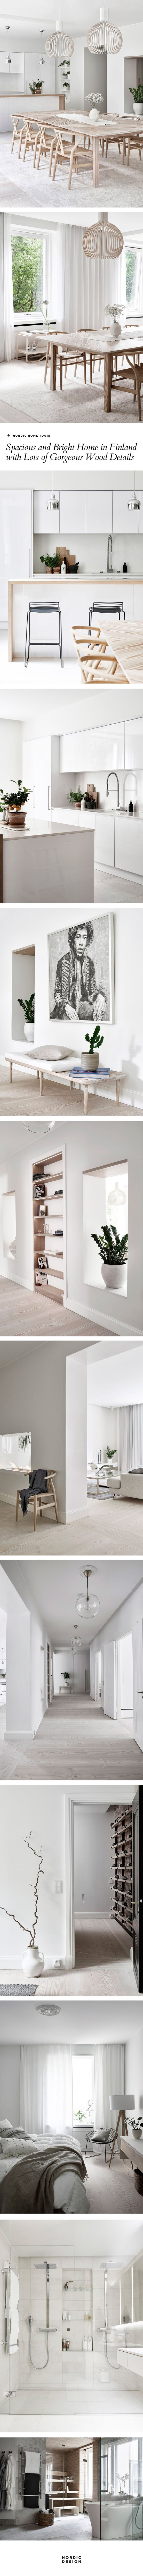 Nordic Home Tour: Spacious and bright home in Finland with lots of gorgeous wood details | NORDIC DESIGN